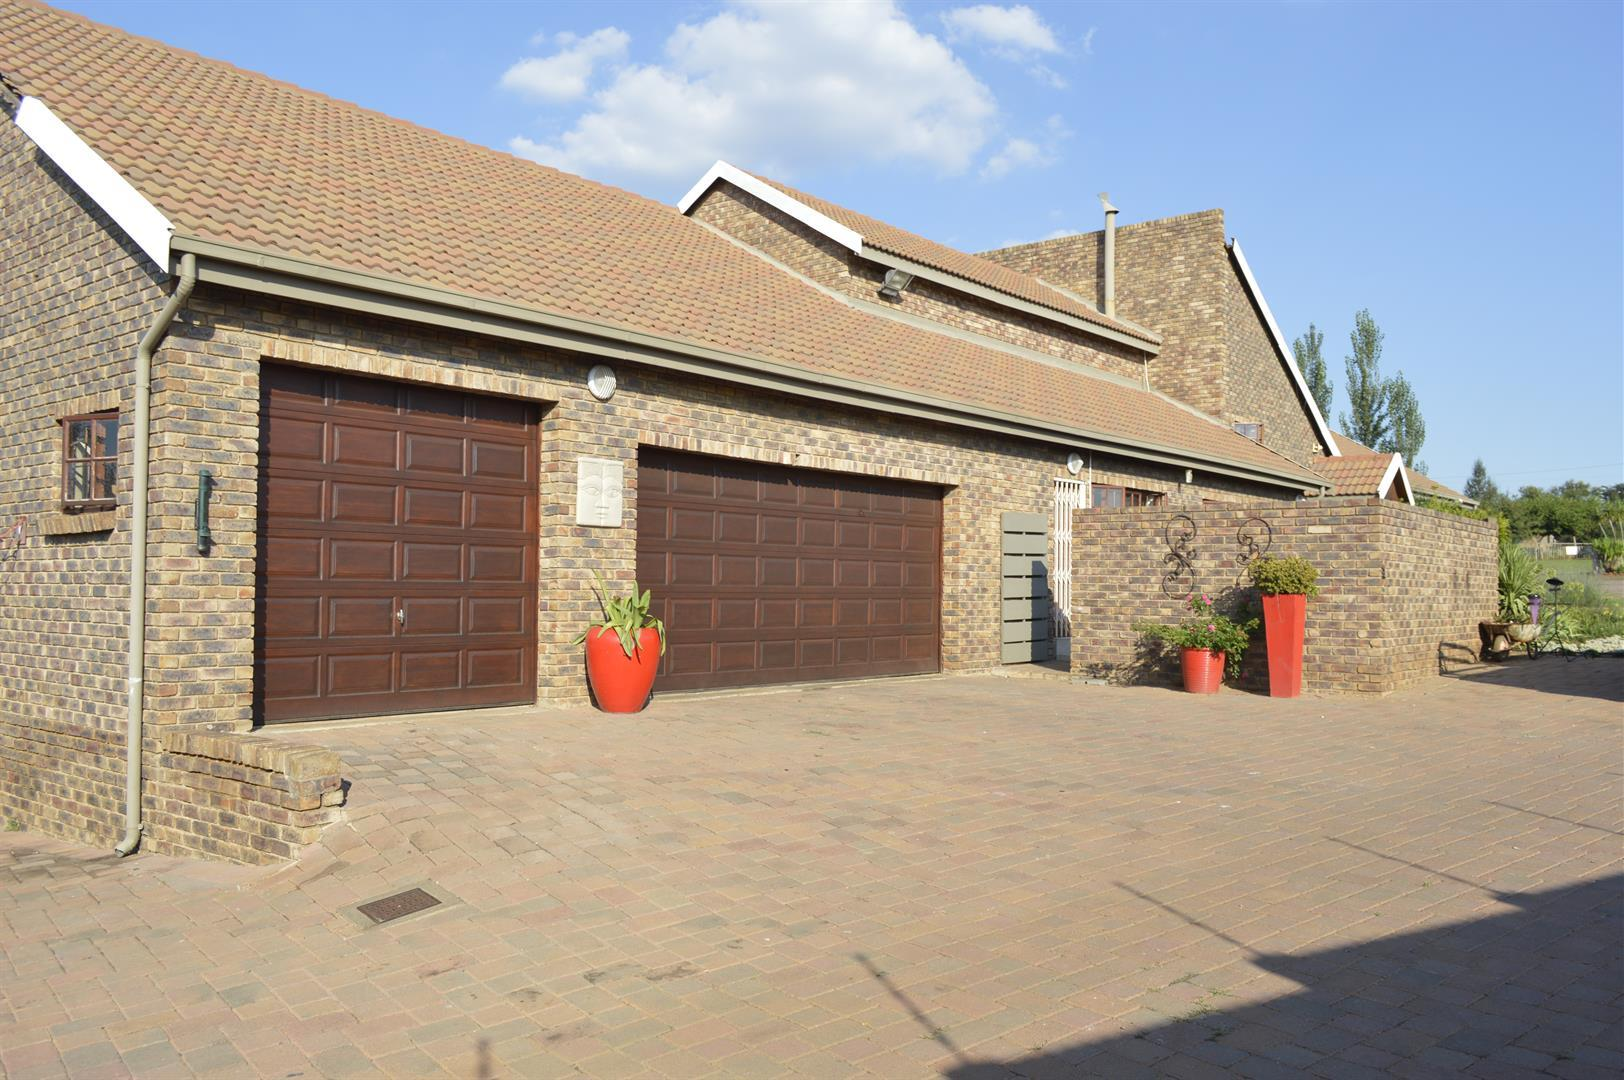 Raslouw A H property for sale. Ref No: 13442161. Picture no 24